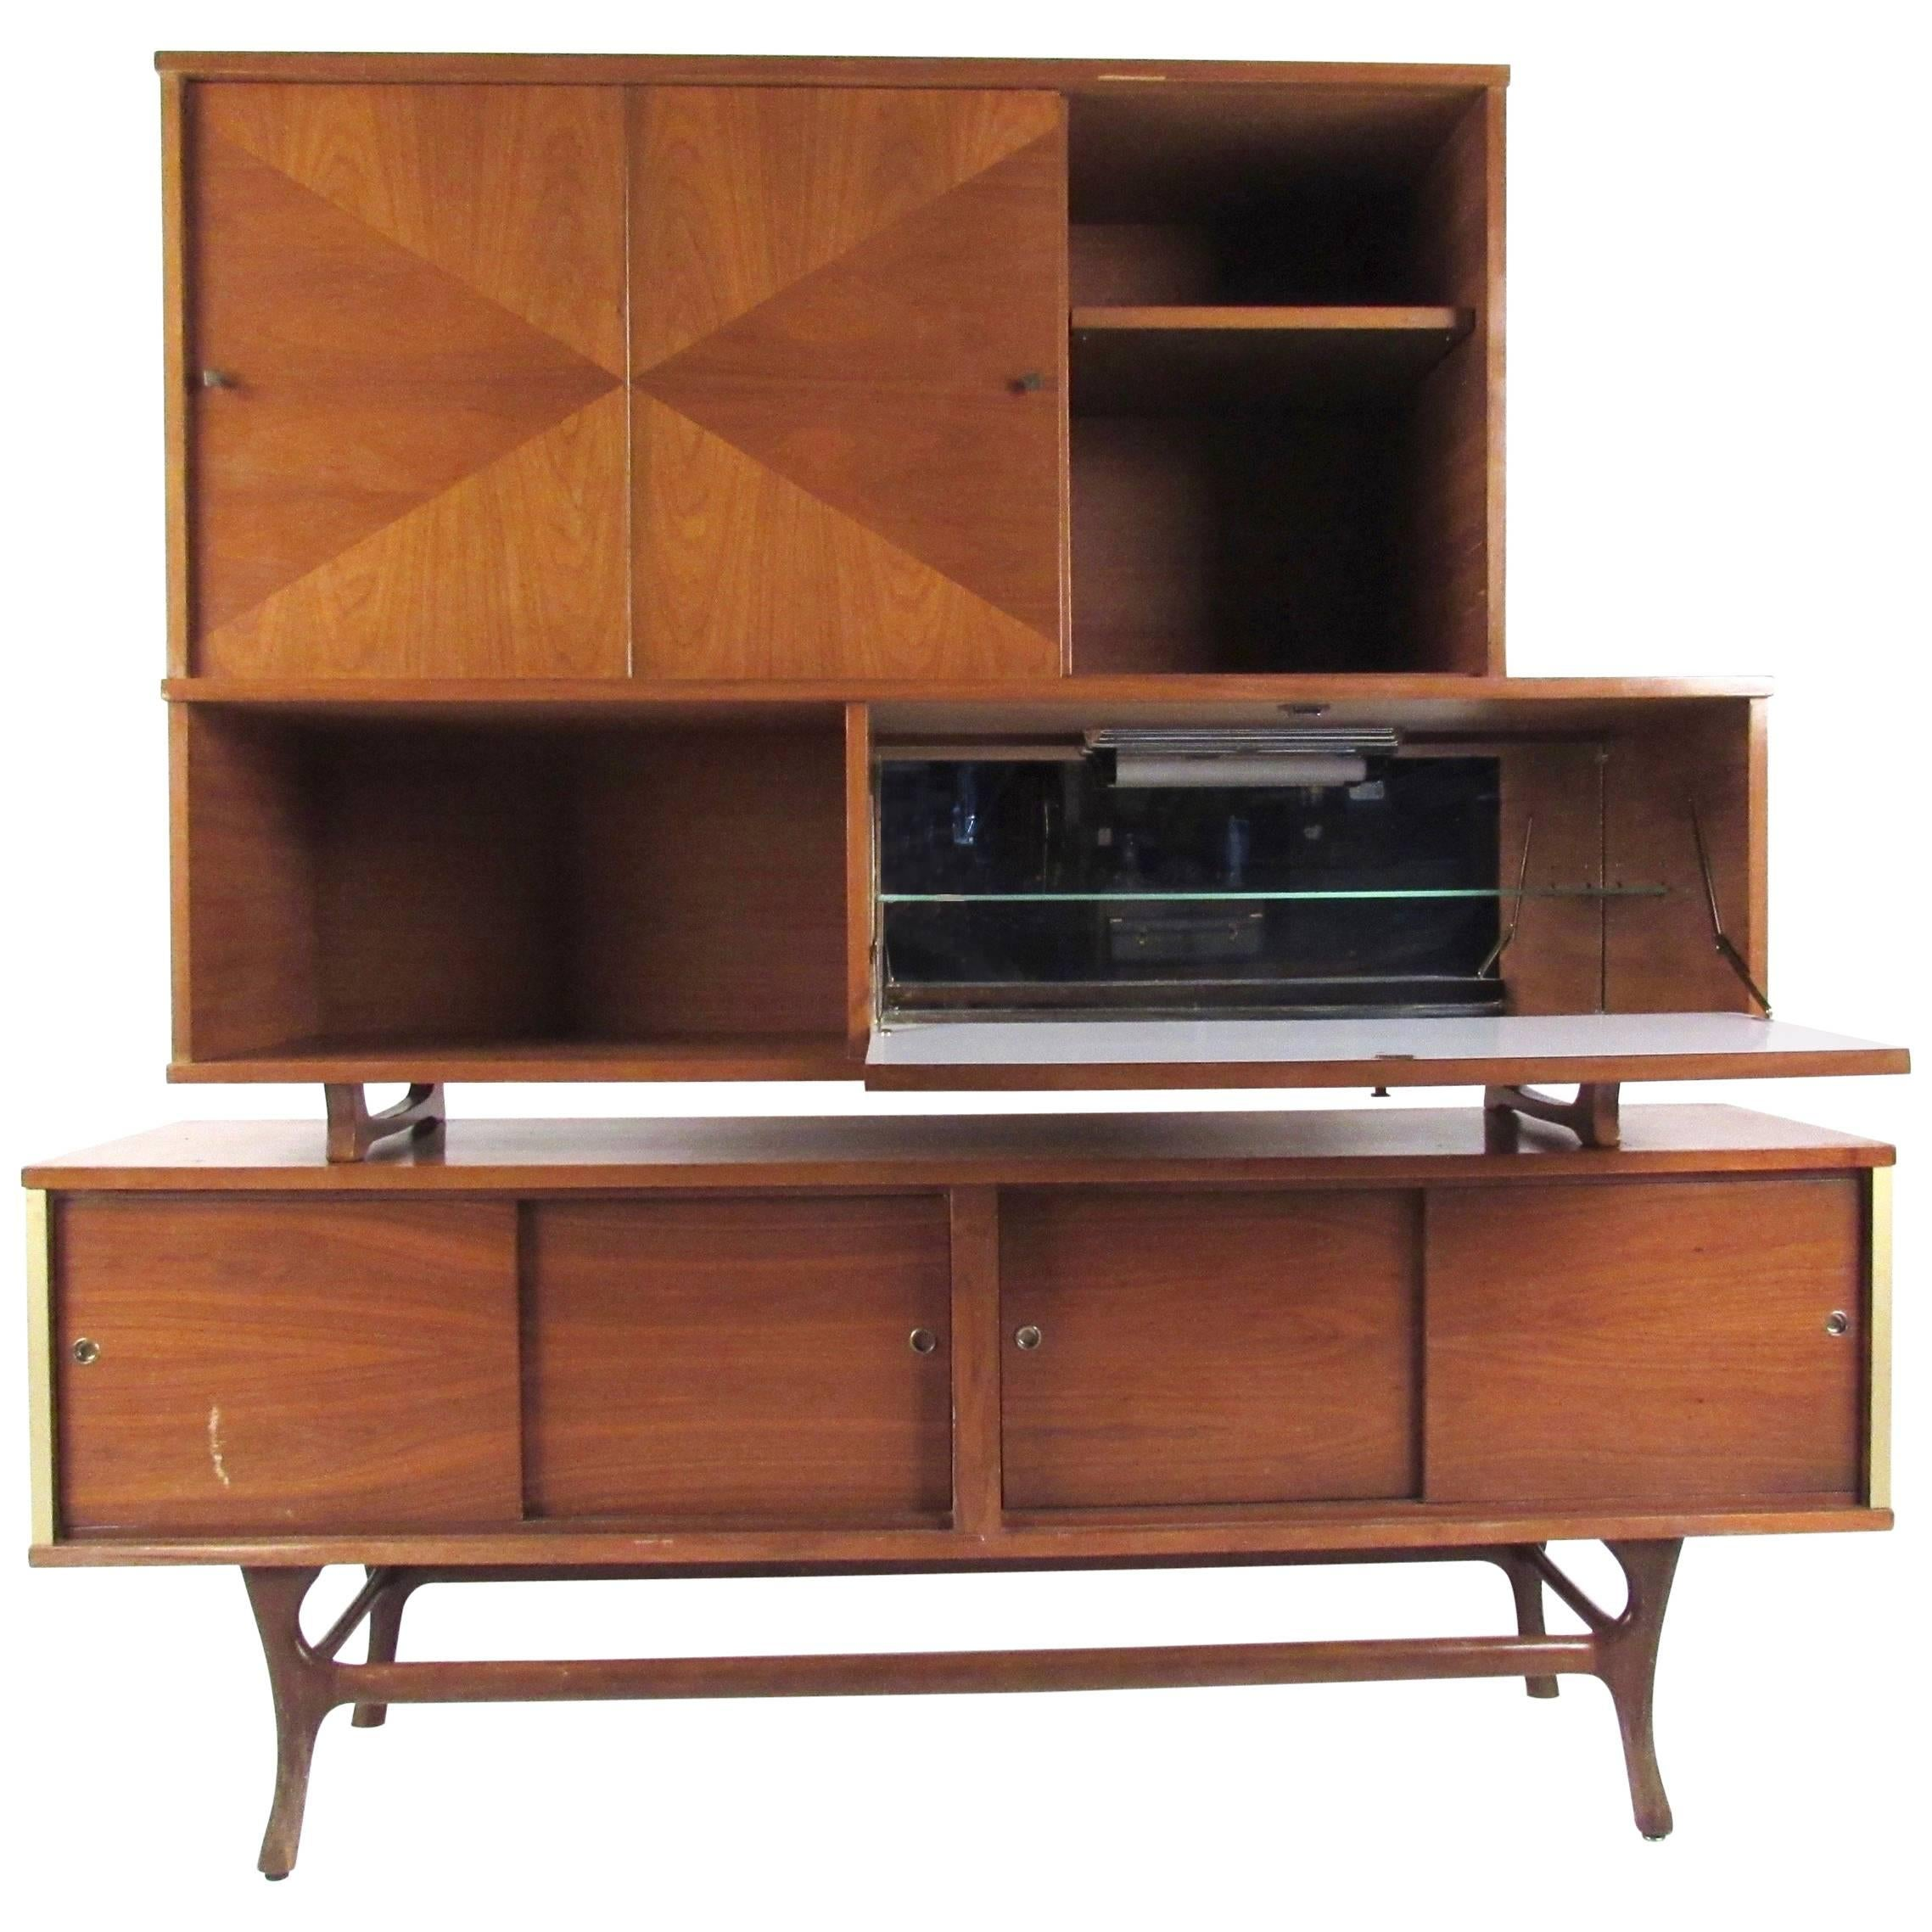 Mid-Century Modern Sideboard with Dry Bar